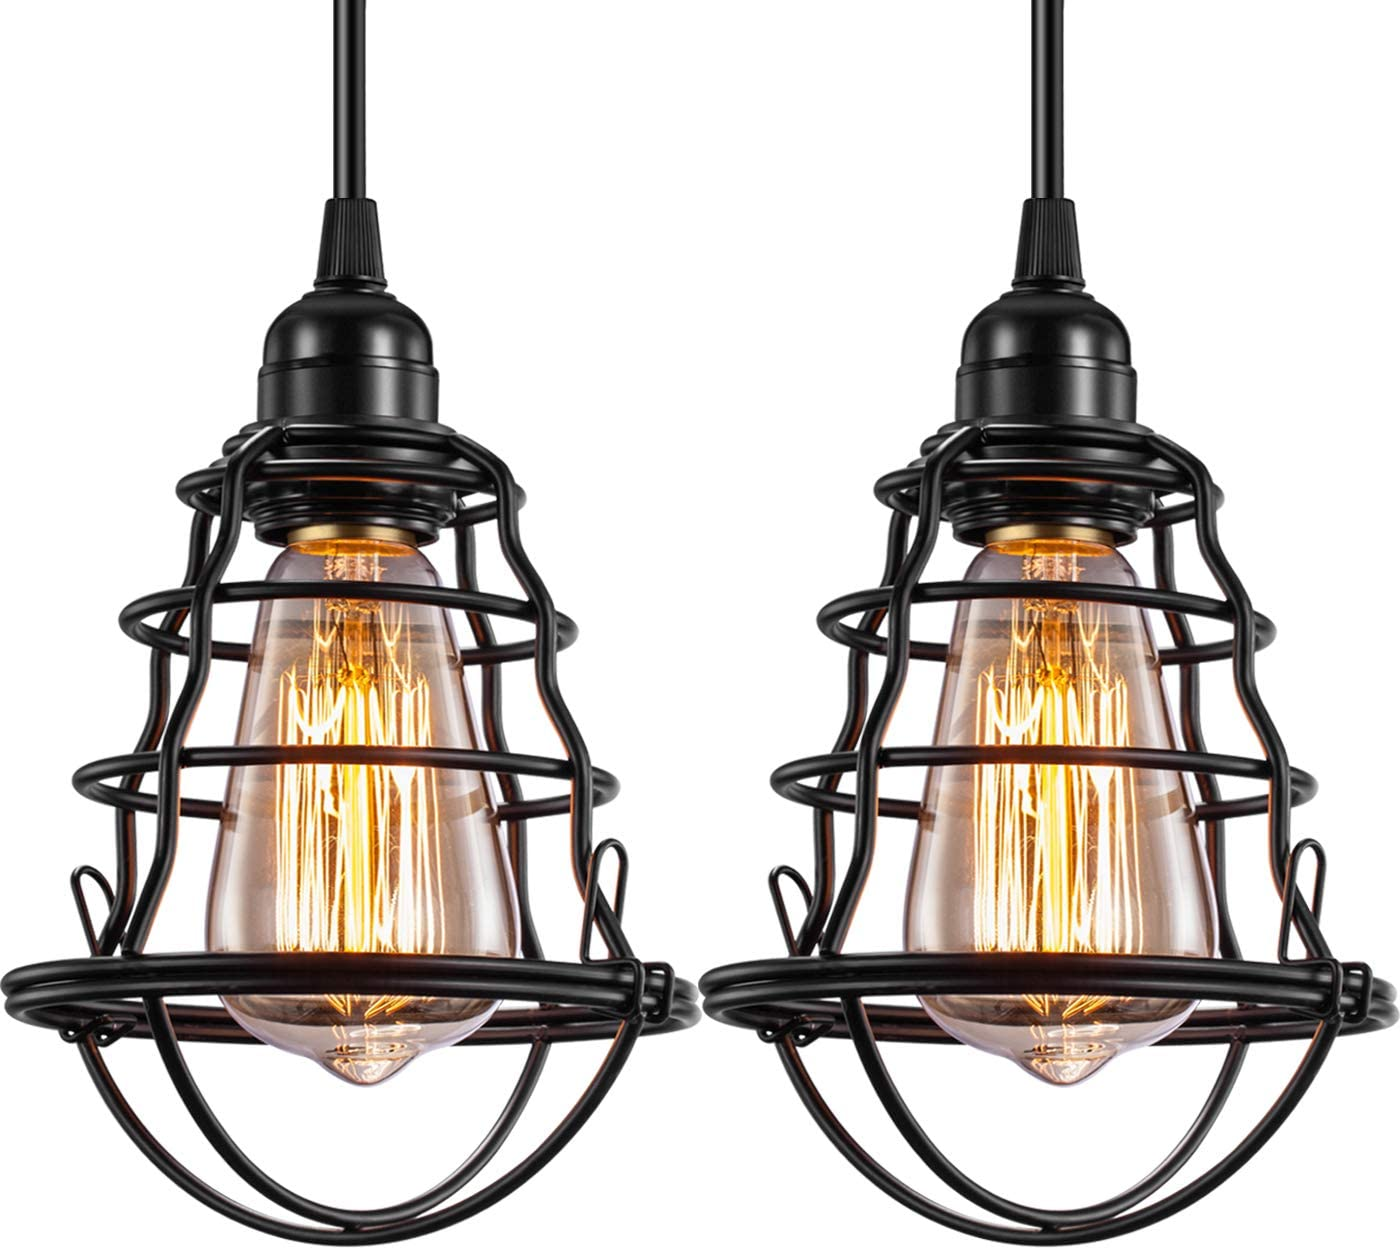 Industrial Pendant Light Edison Hanging Cage Pendant Lights E26 E27 Base Vintage Adjustable Pendant Lamp Fixture for Kitchen Home Lighting 2 Pack